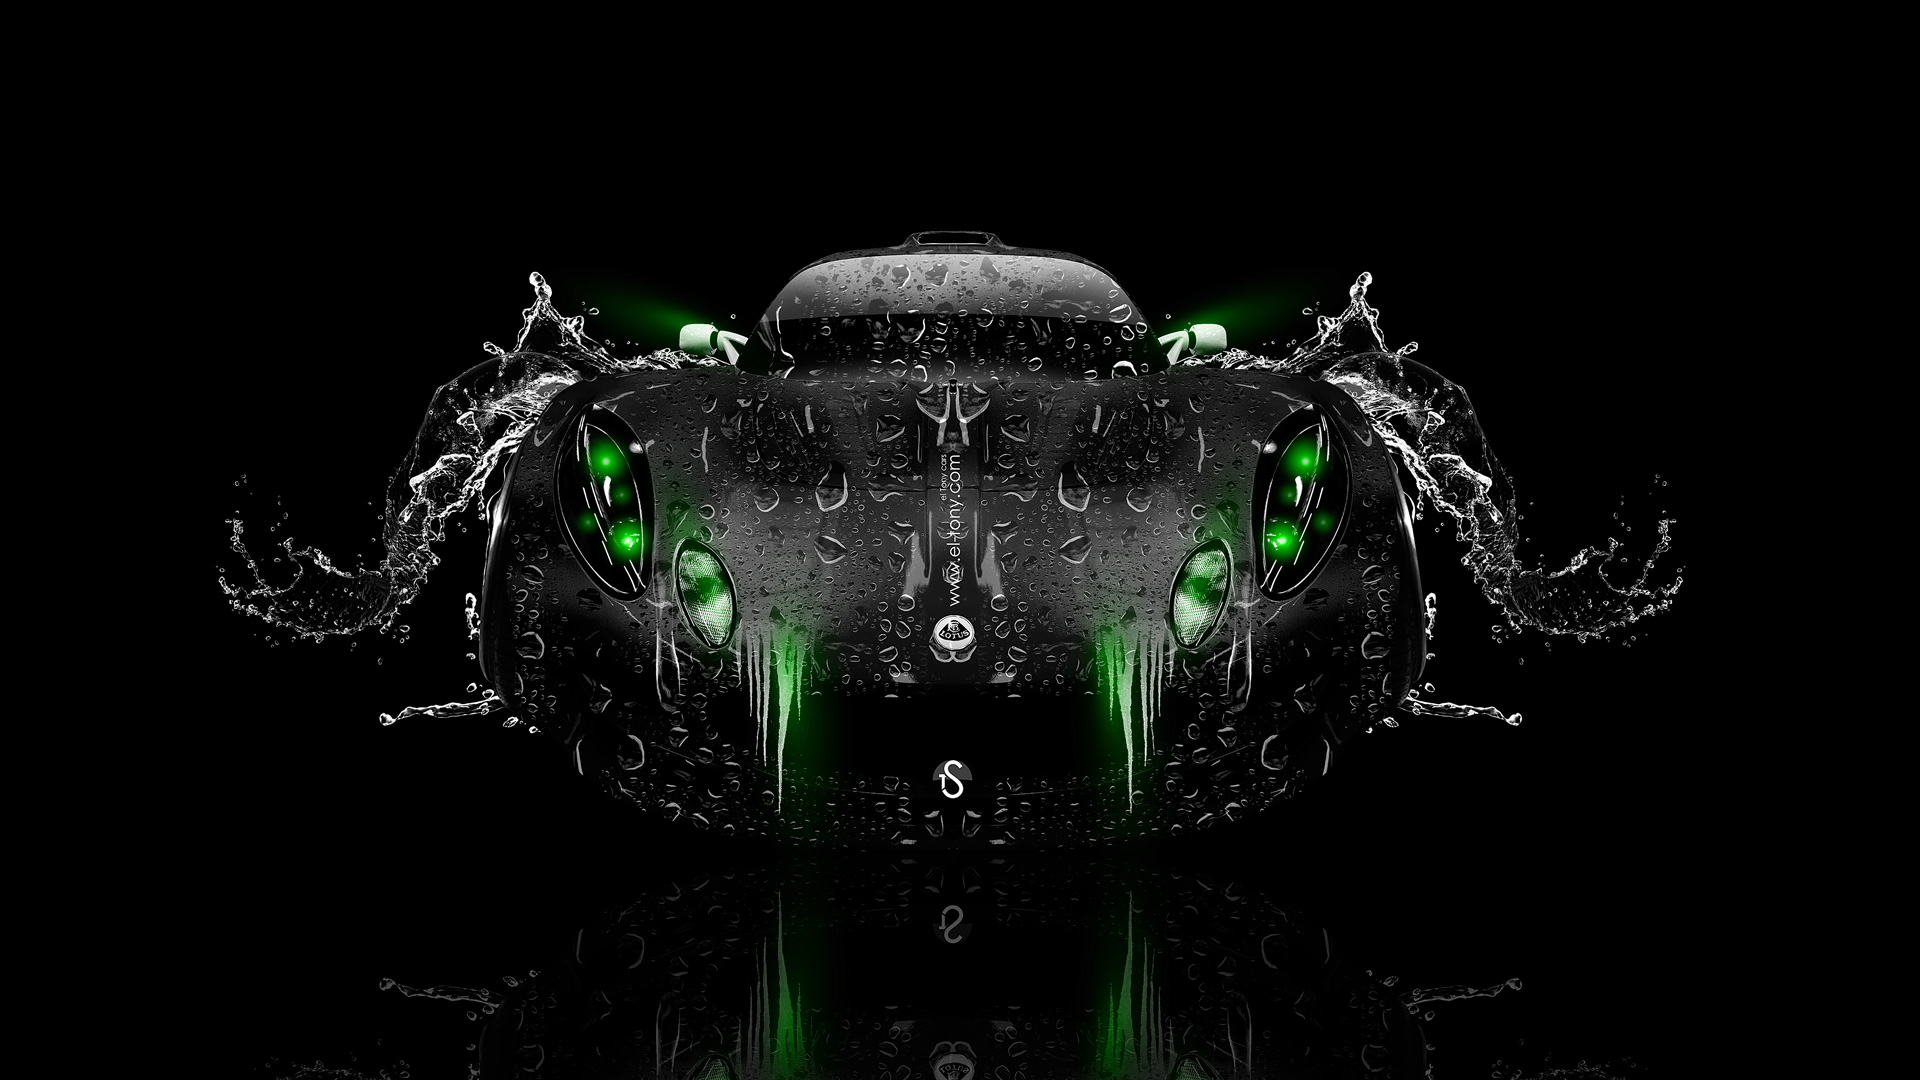 Lotus-Exige-FrontUp-Water-Car-2014-Green-Neon-HD-Wallpapers-design-by-Tony-Kokhan-[www.el-tony.com]